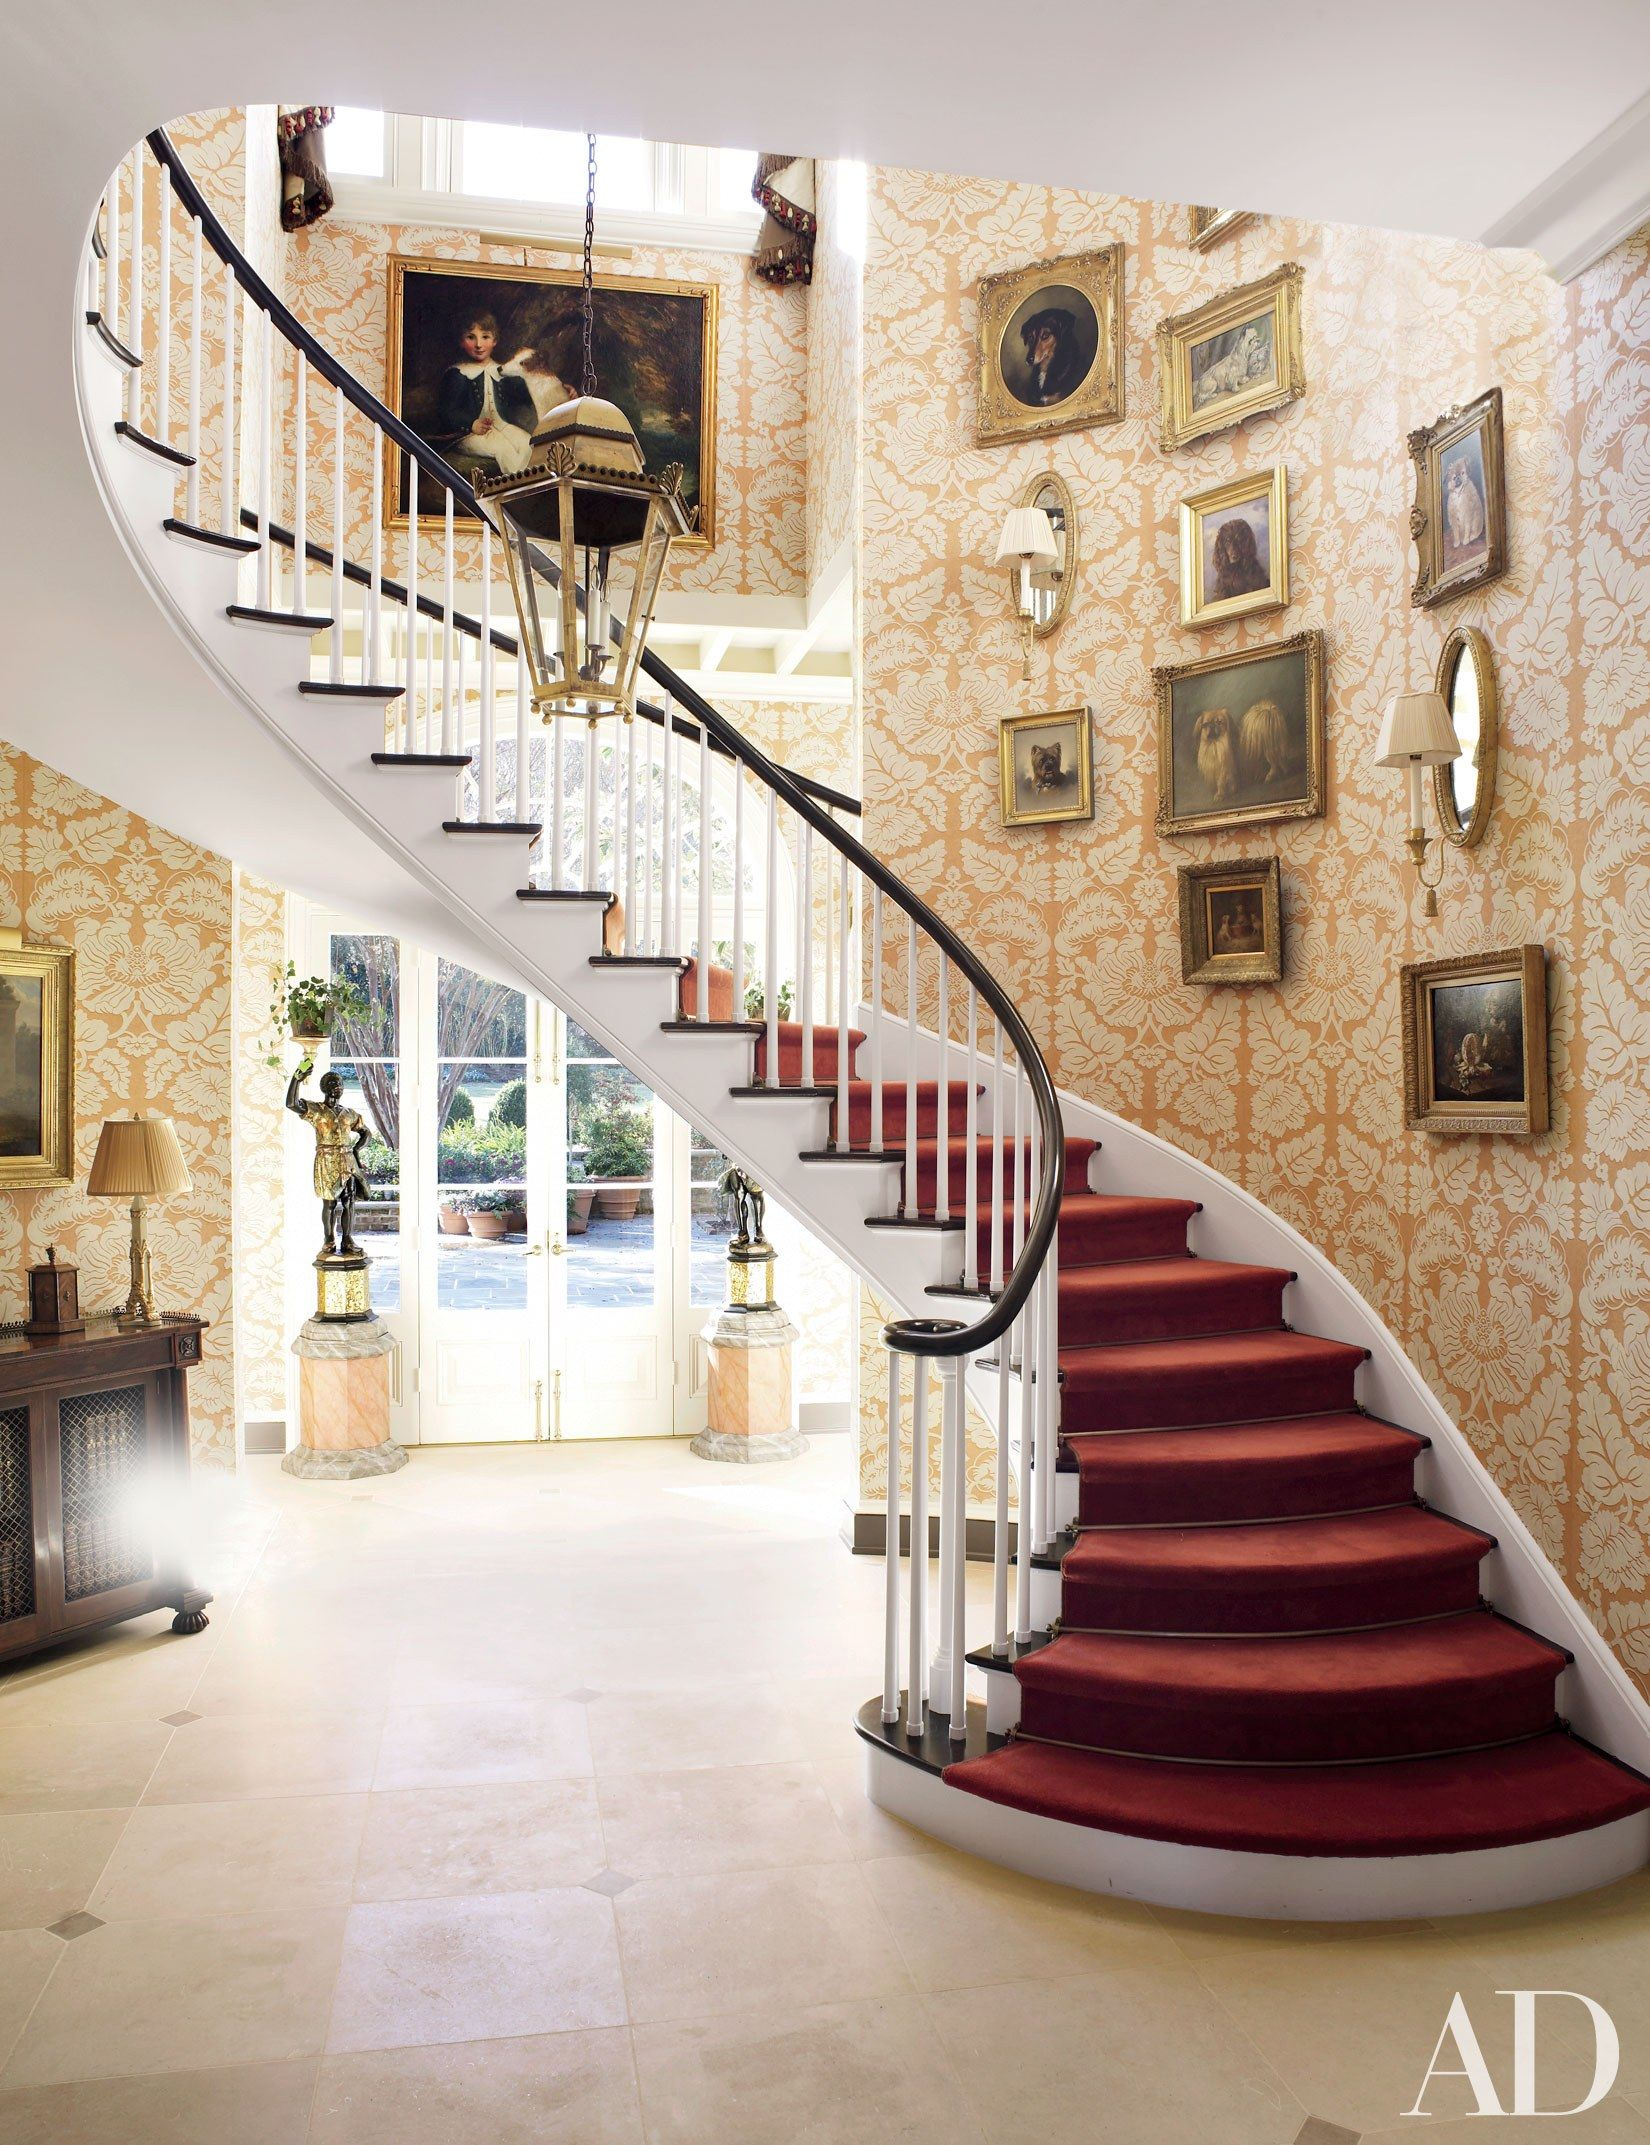 Making An Entrance Is Easy With These Magnificent Staircases From